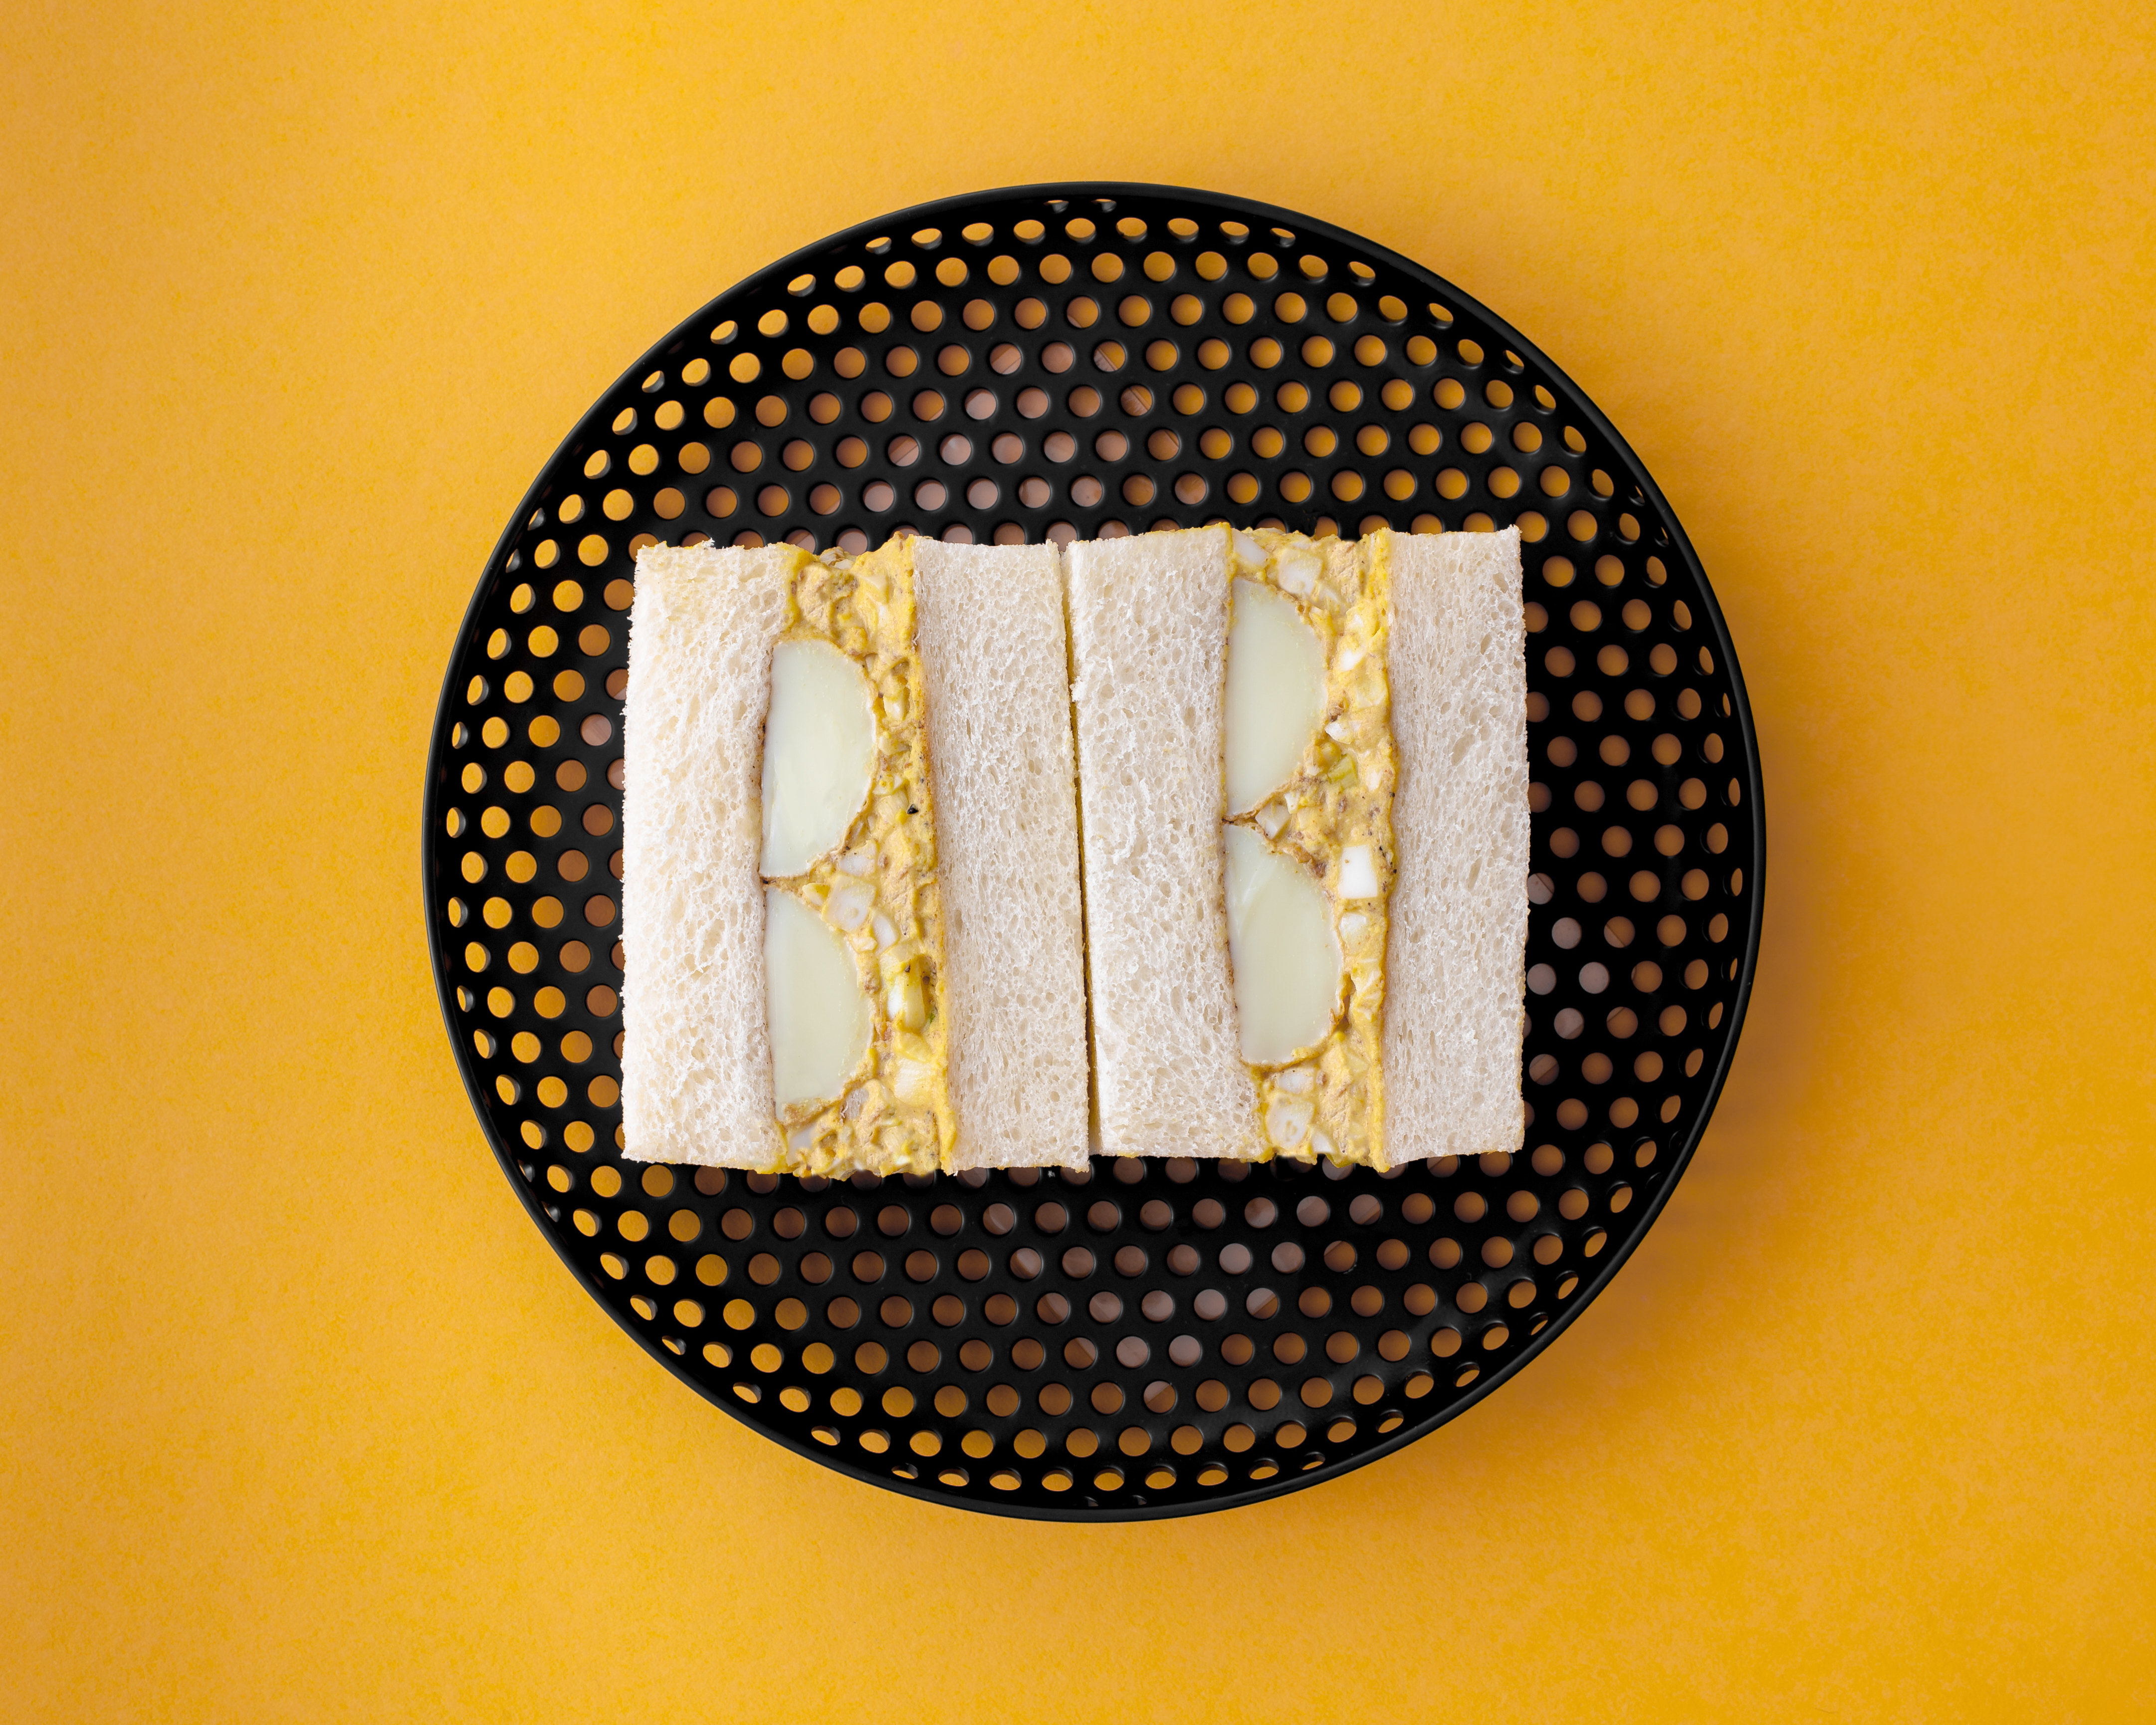 """The """"eggy tofu"""" sando, which is planned for Tóu, a new London restaurant by Tata Eatery's Ana Gonçalves and Zijun Meng"""